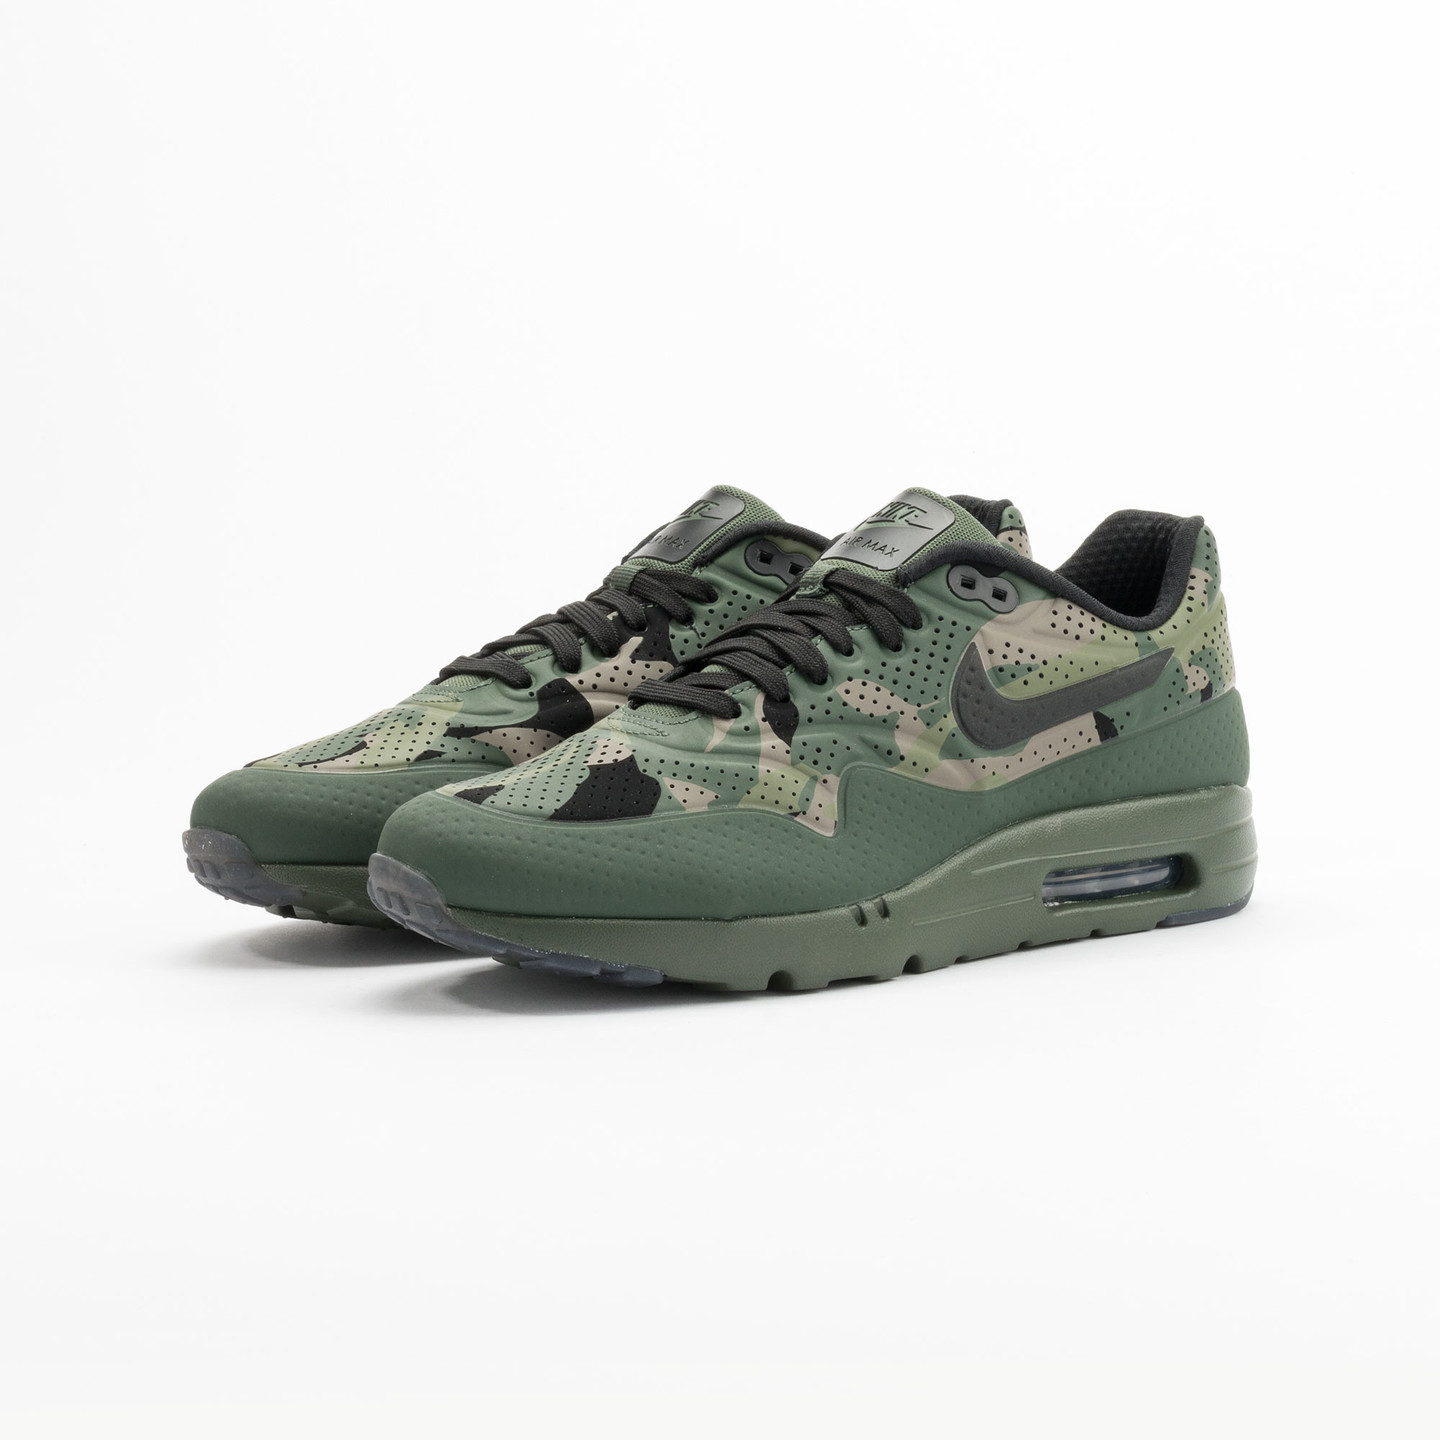 Nike Air Max 1 Ultra Moire Print Camouflage / Carbon Green 806851-300-42.5